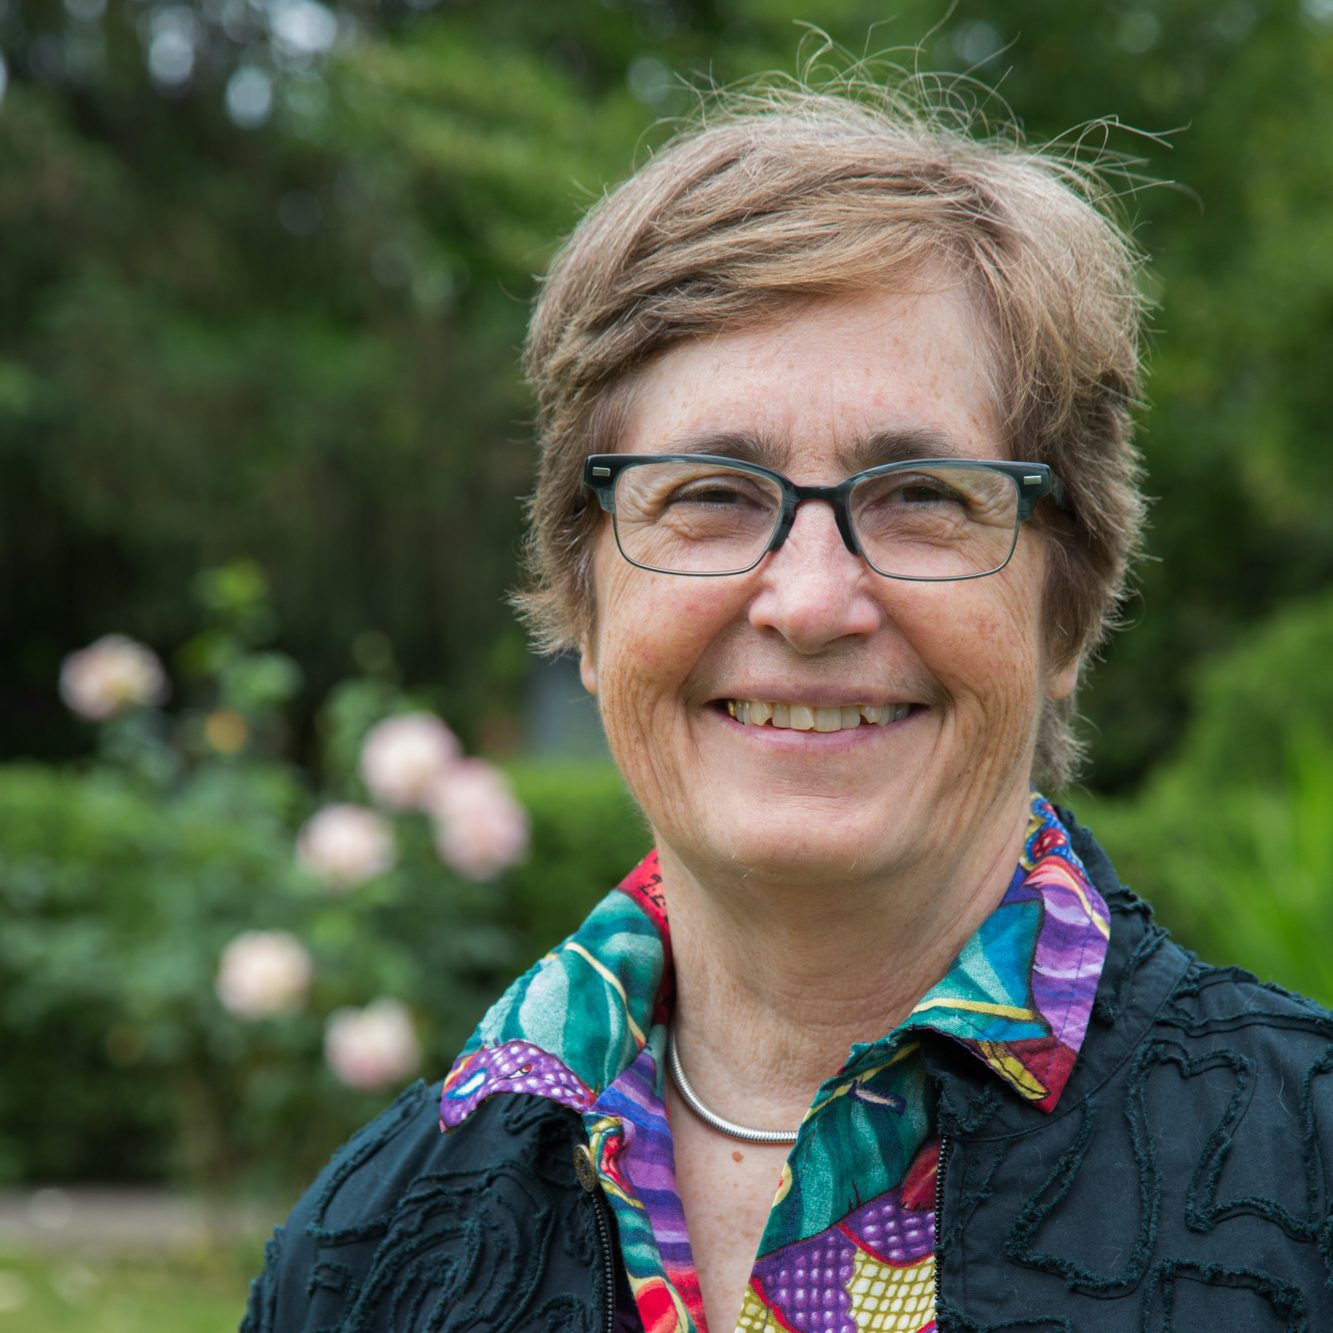 Jane Peters, Founder of Research Into Action, Inc. – Exit Story